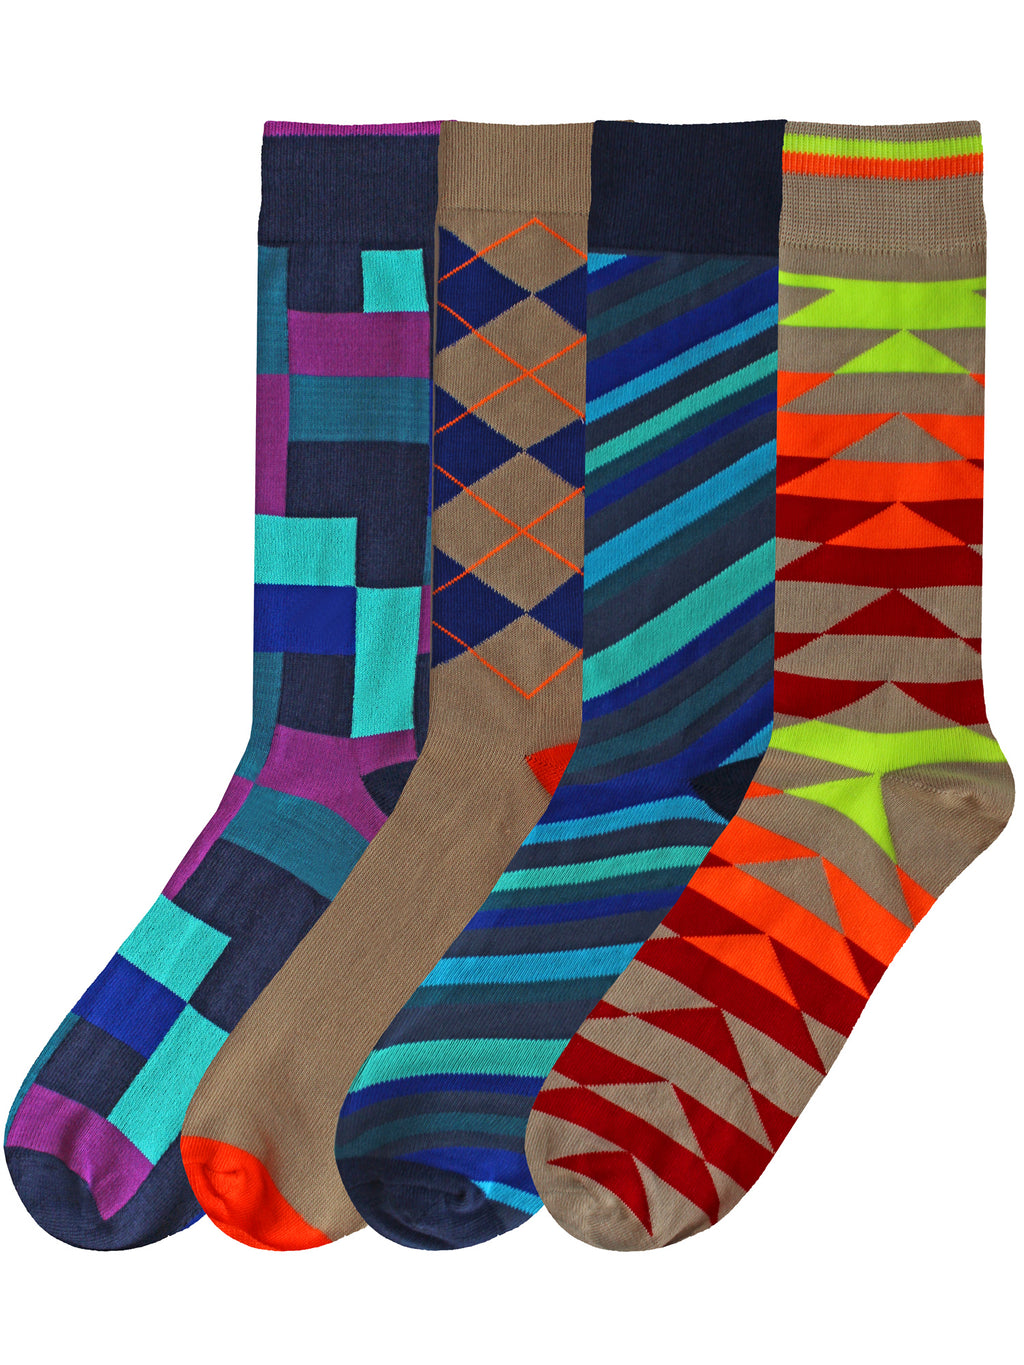 Mens Colorful 4-Pack Dress Socks